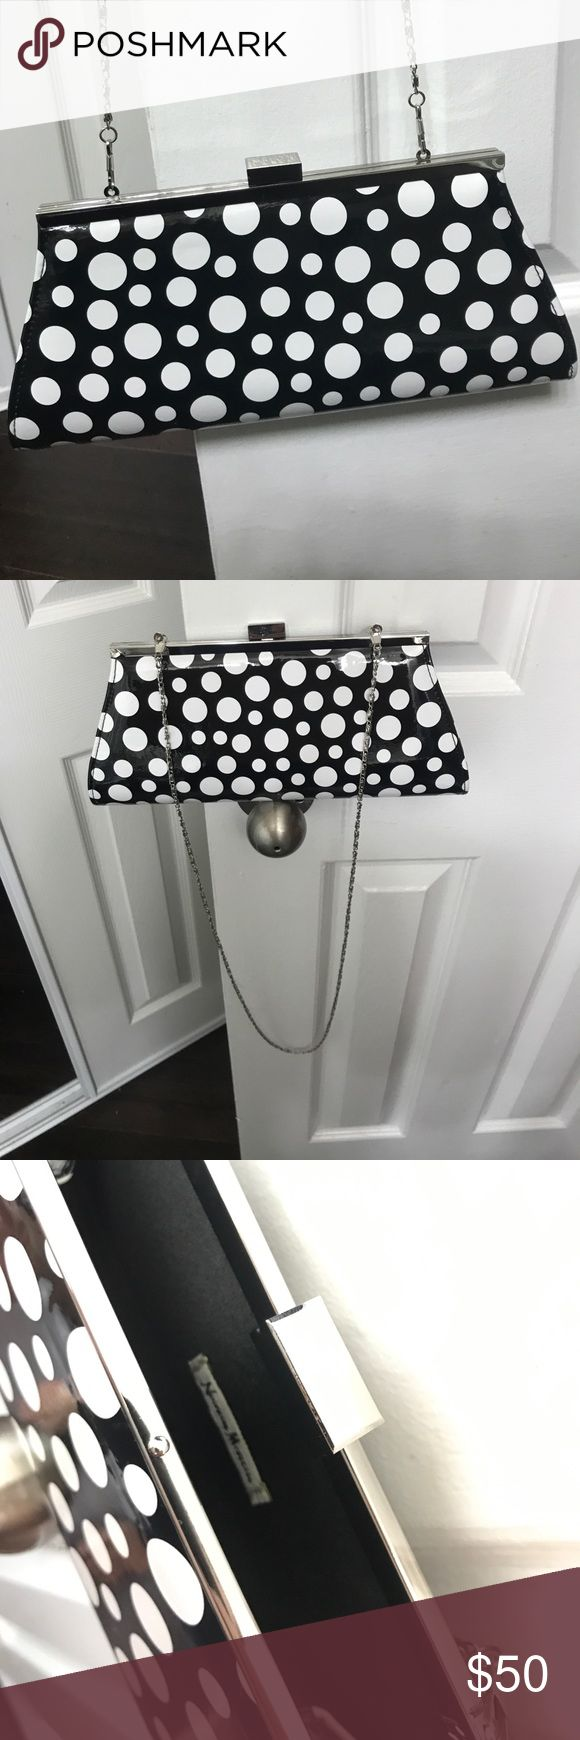 Neiman Marcus Polka Dot Clutch Black and white Polka Dot clutch with a silver accent top and silver strap chain. Never been used, excellent condition, nothing has been inside of it. Great for all occasions, can be used as a cross body or clutch. Neiman Marcus Bags Clutches & Wristlets